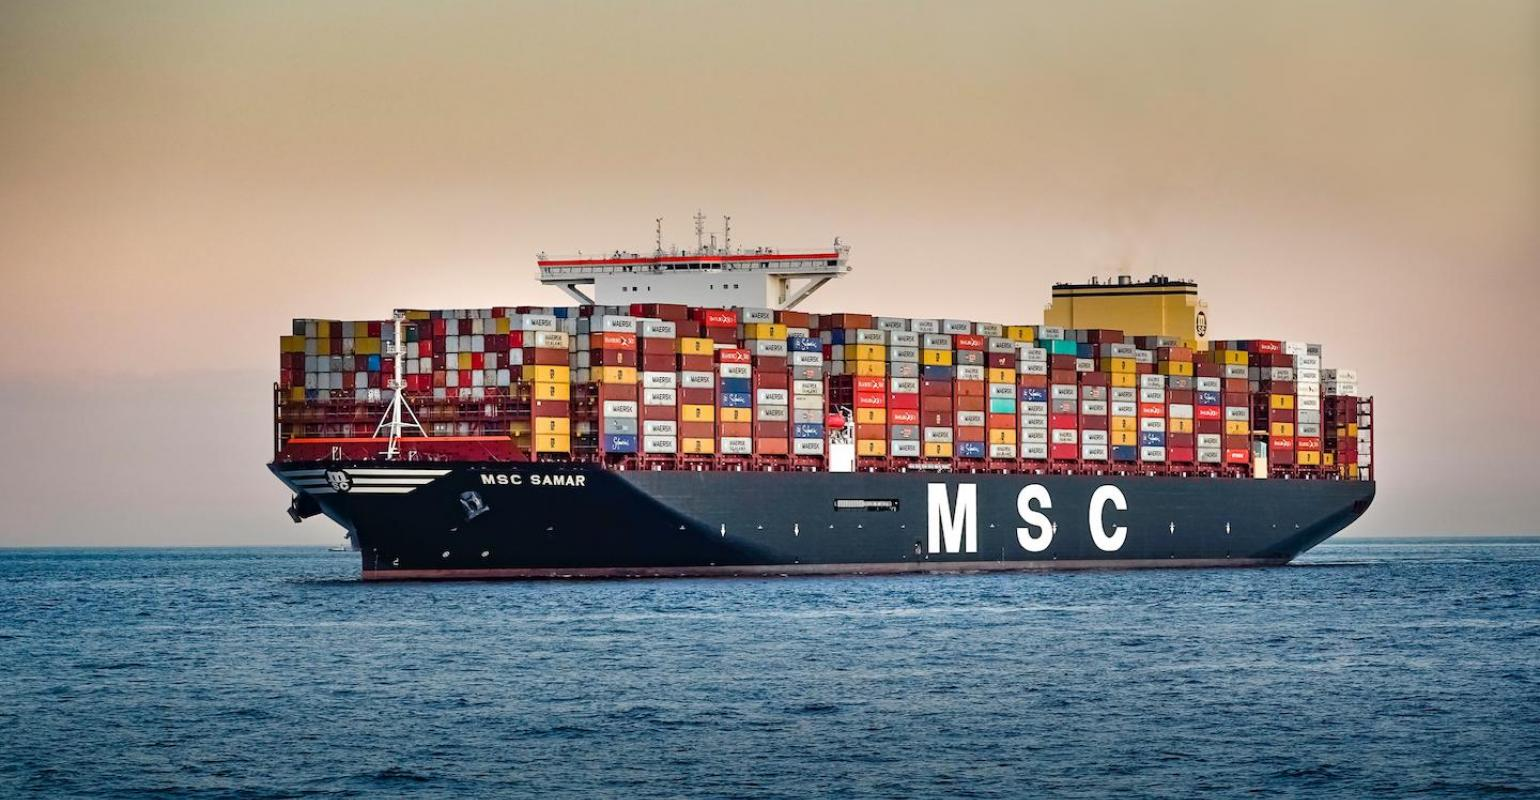 Global container shipping fleet hits 23m teu in capacity ...